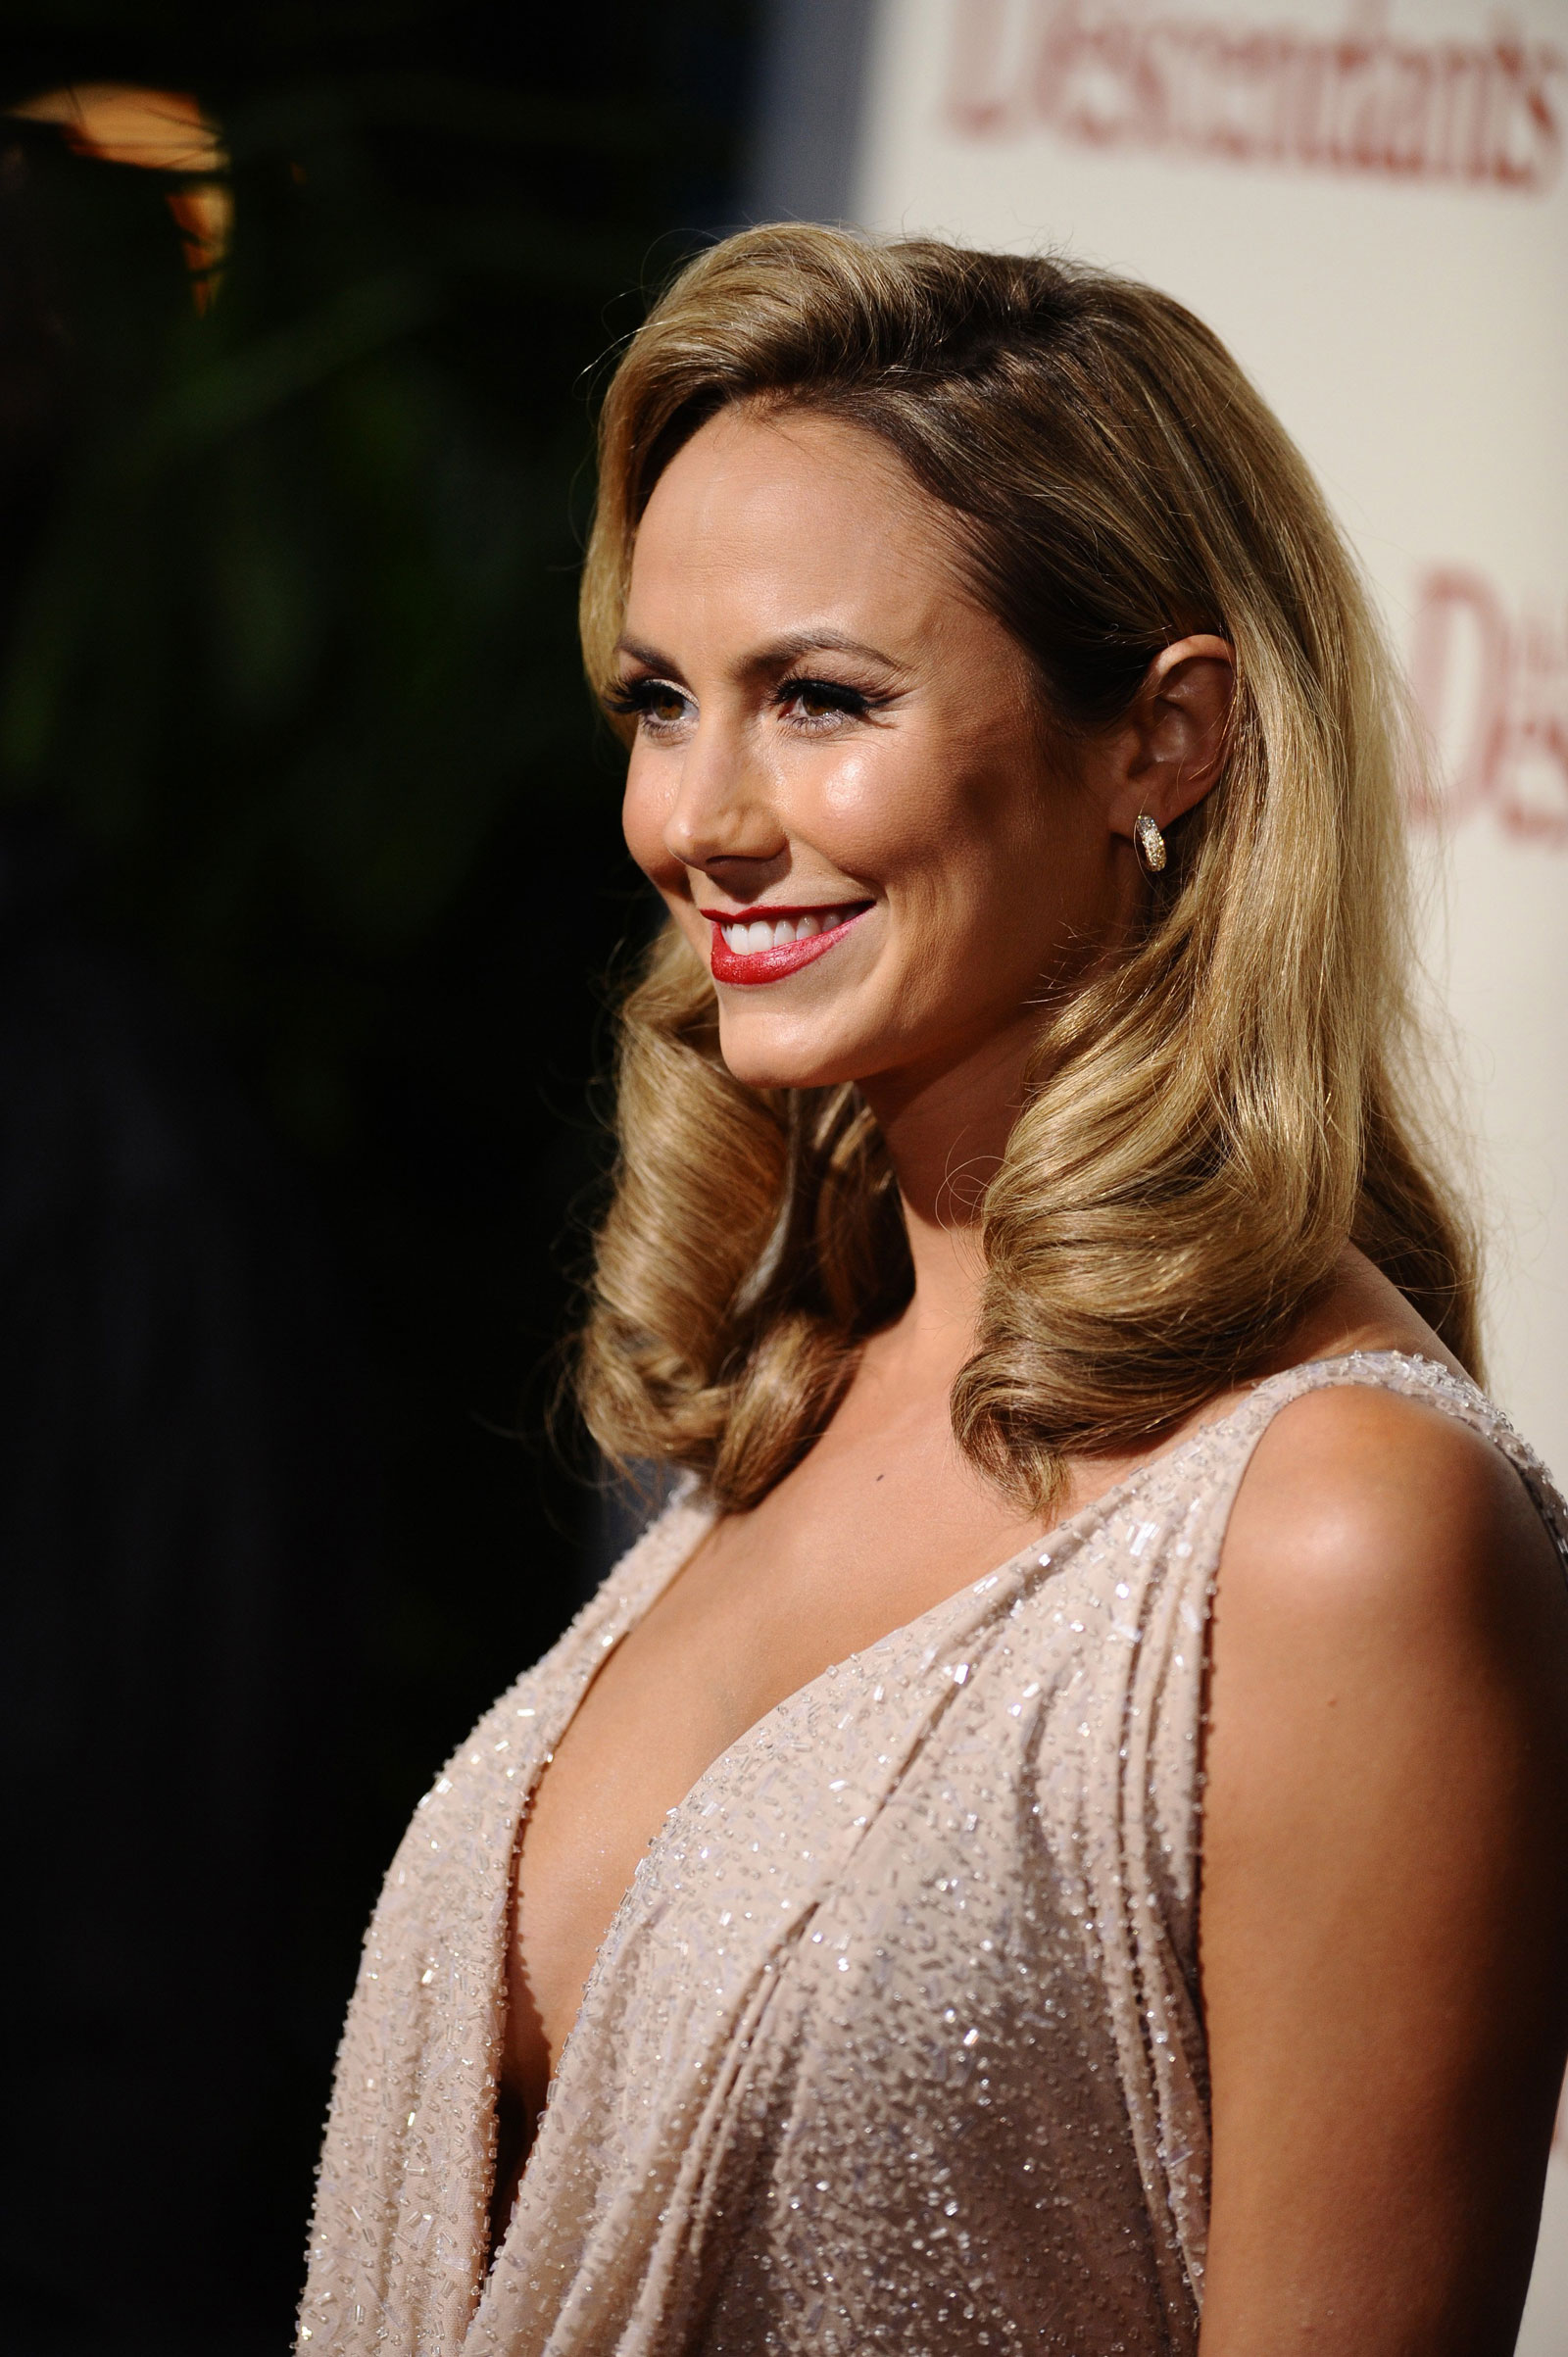 stacy keibler picture - photo #42